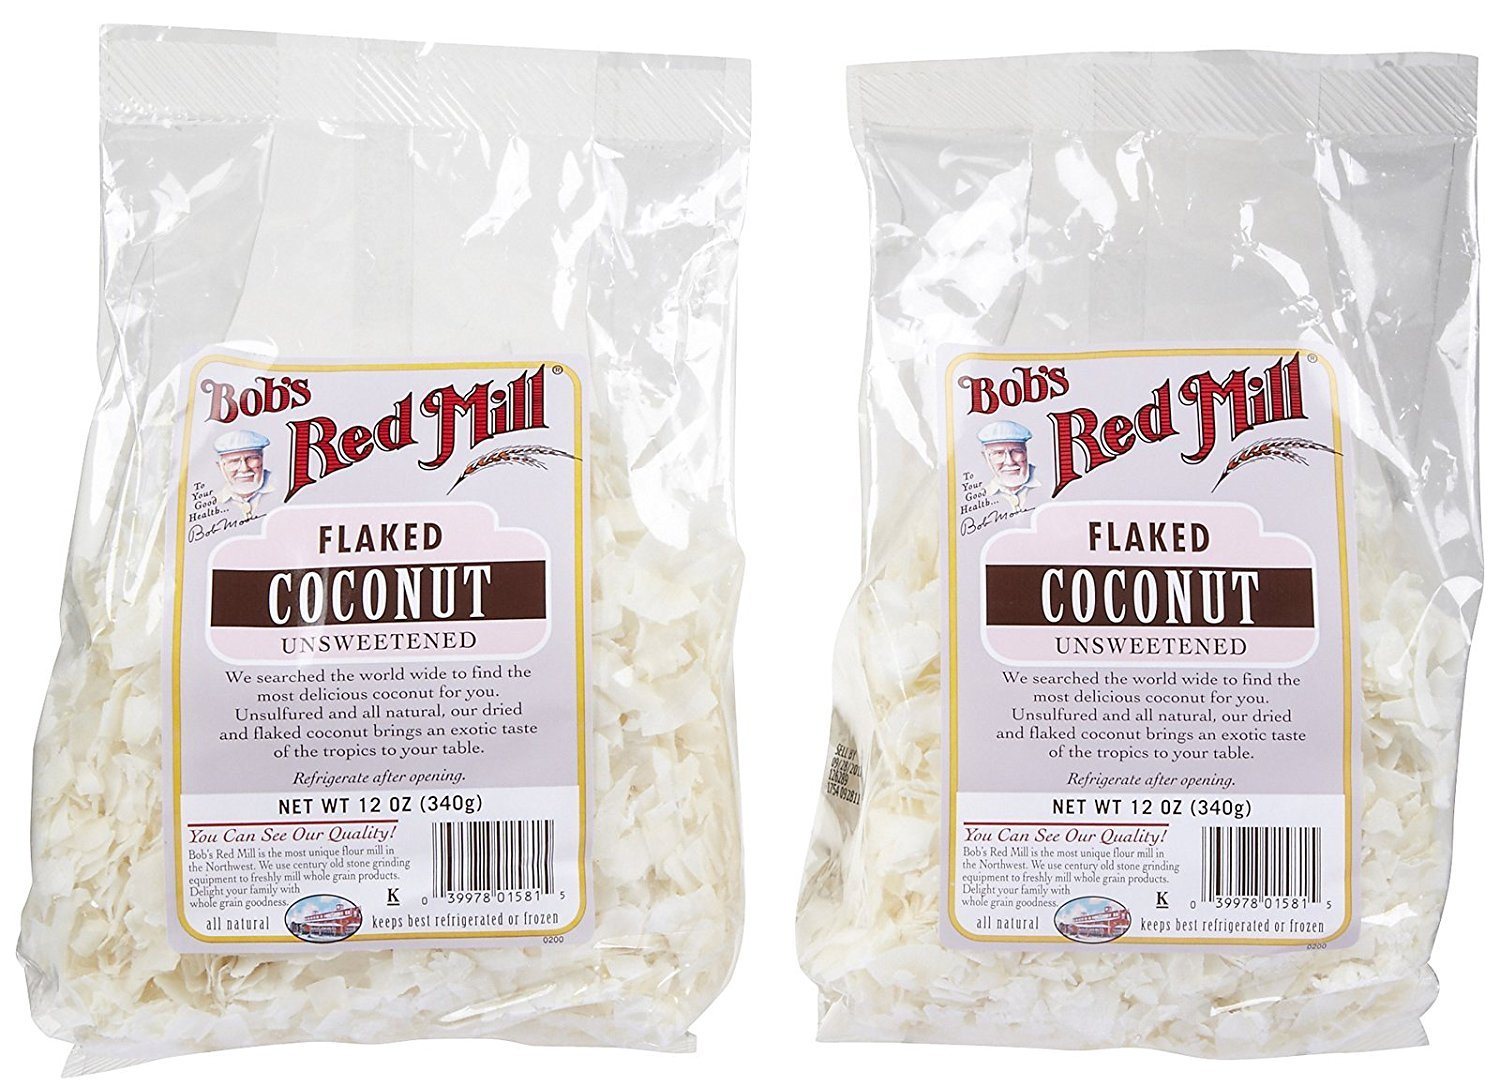 Bob's Red Mill Unsweetened Flaked Coconut - 12 oz - 2 pk